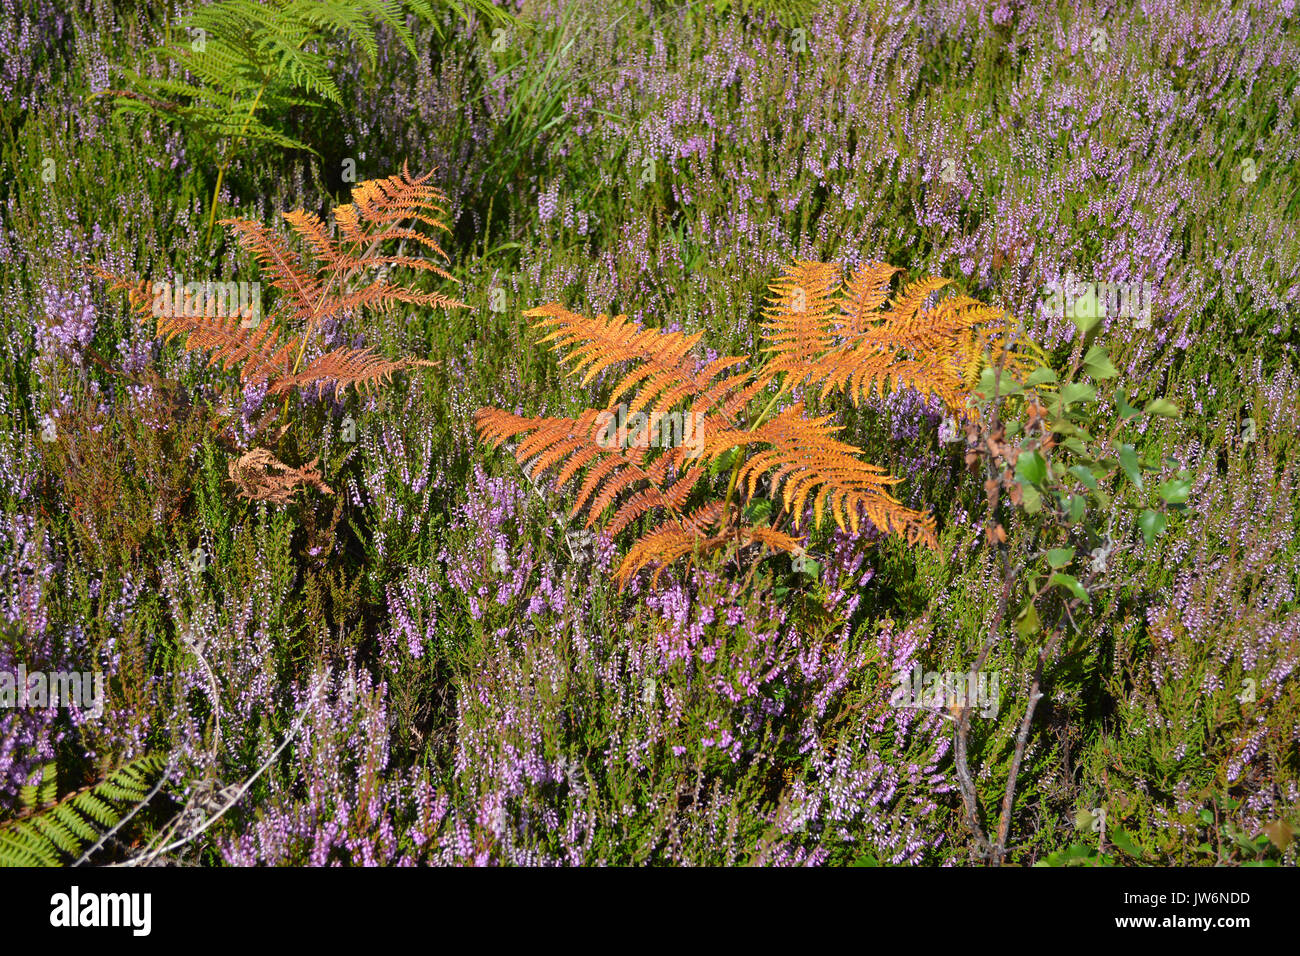 Golden Bracken and Heather - Stock Image